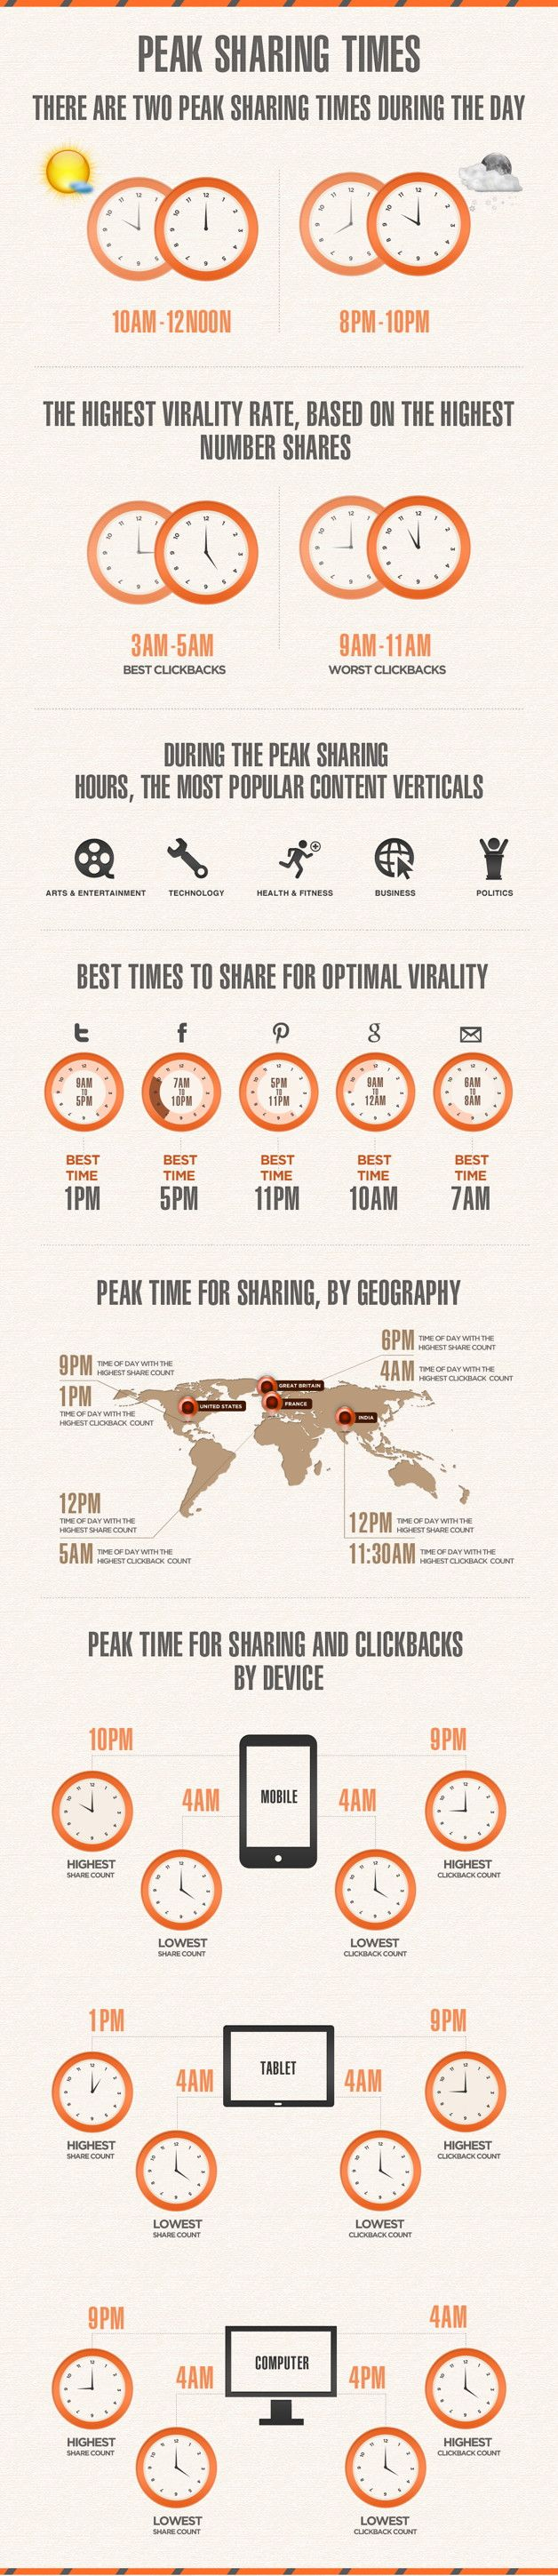 Peak sharing times on social media #infographic